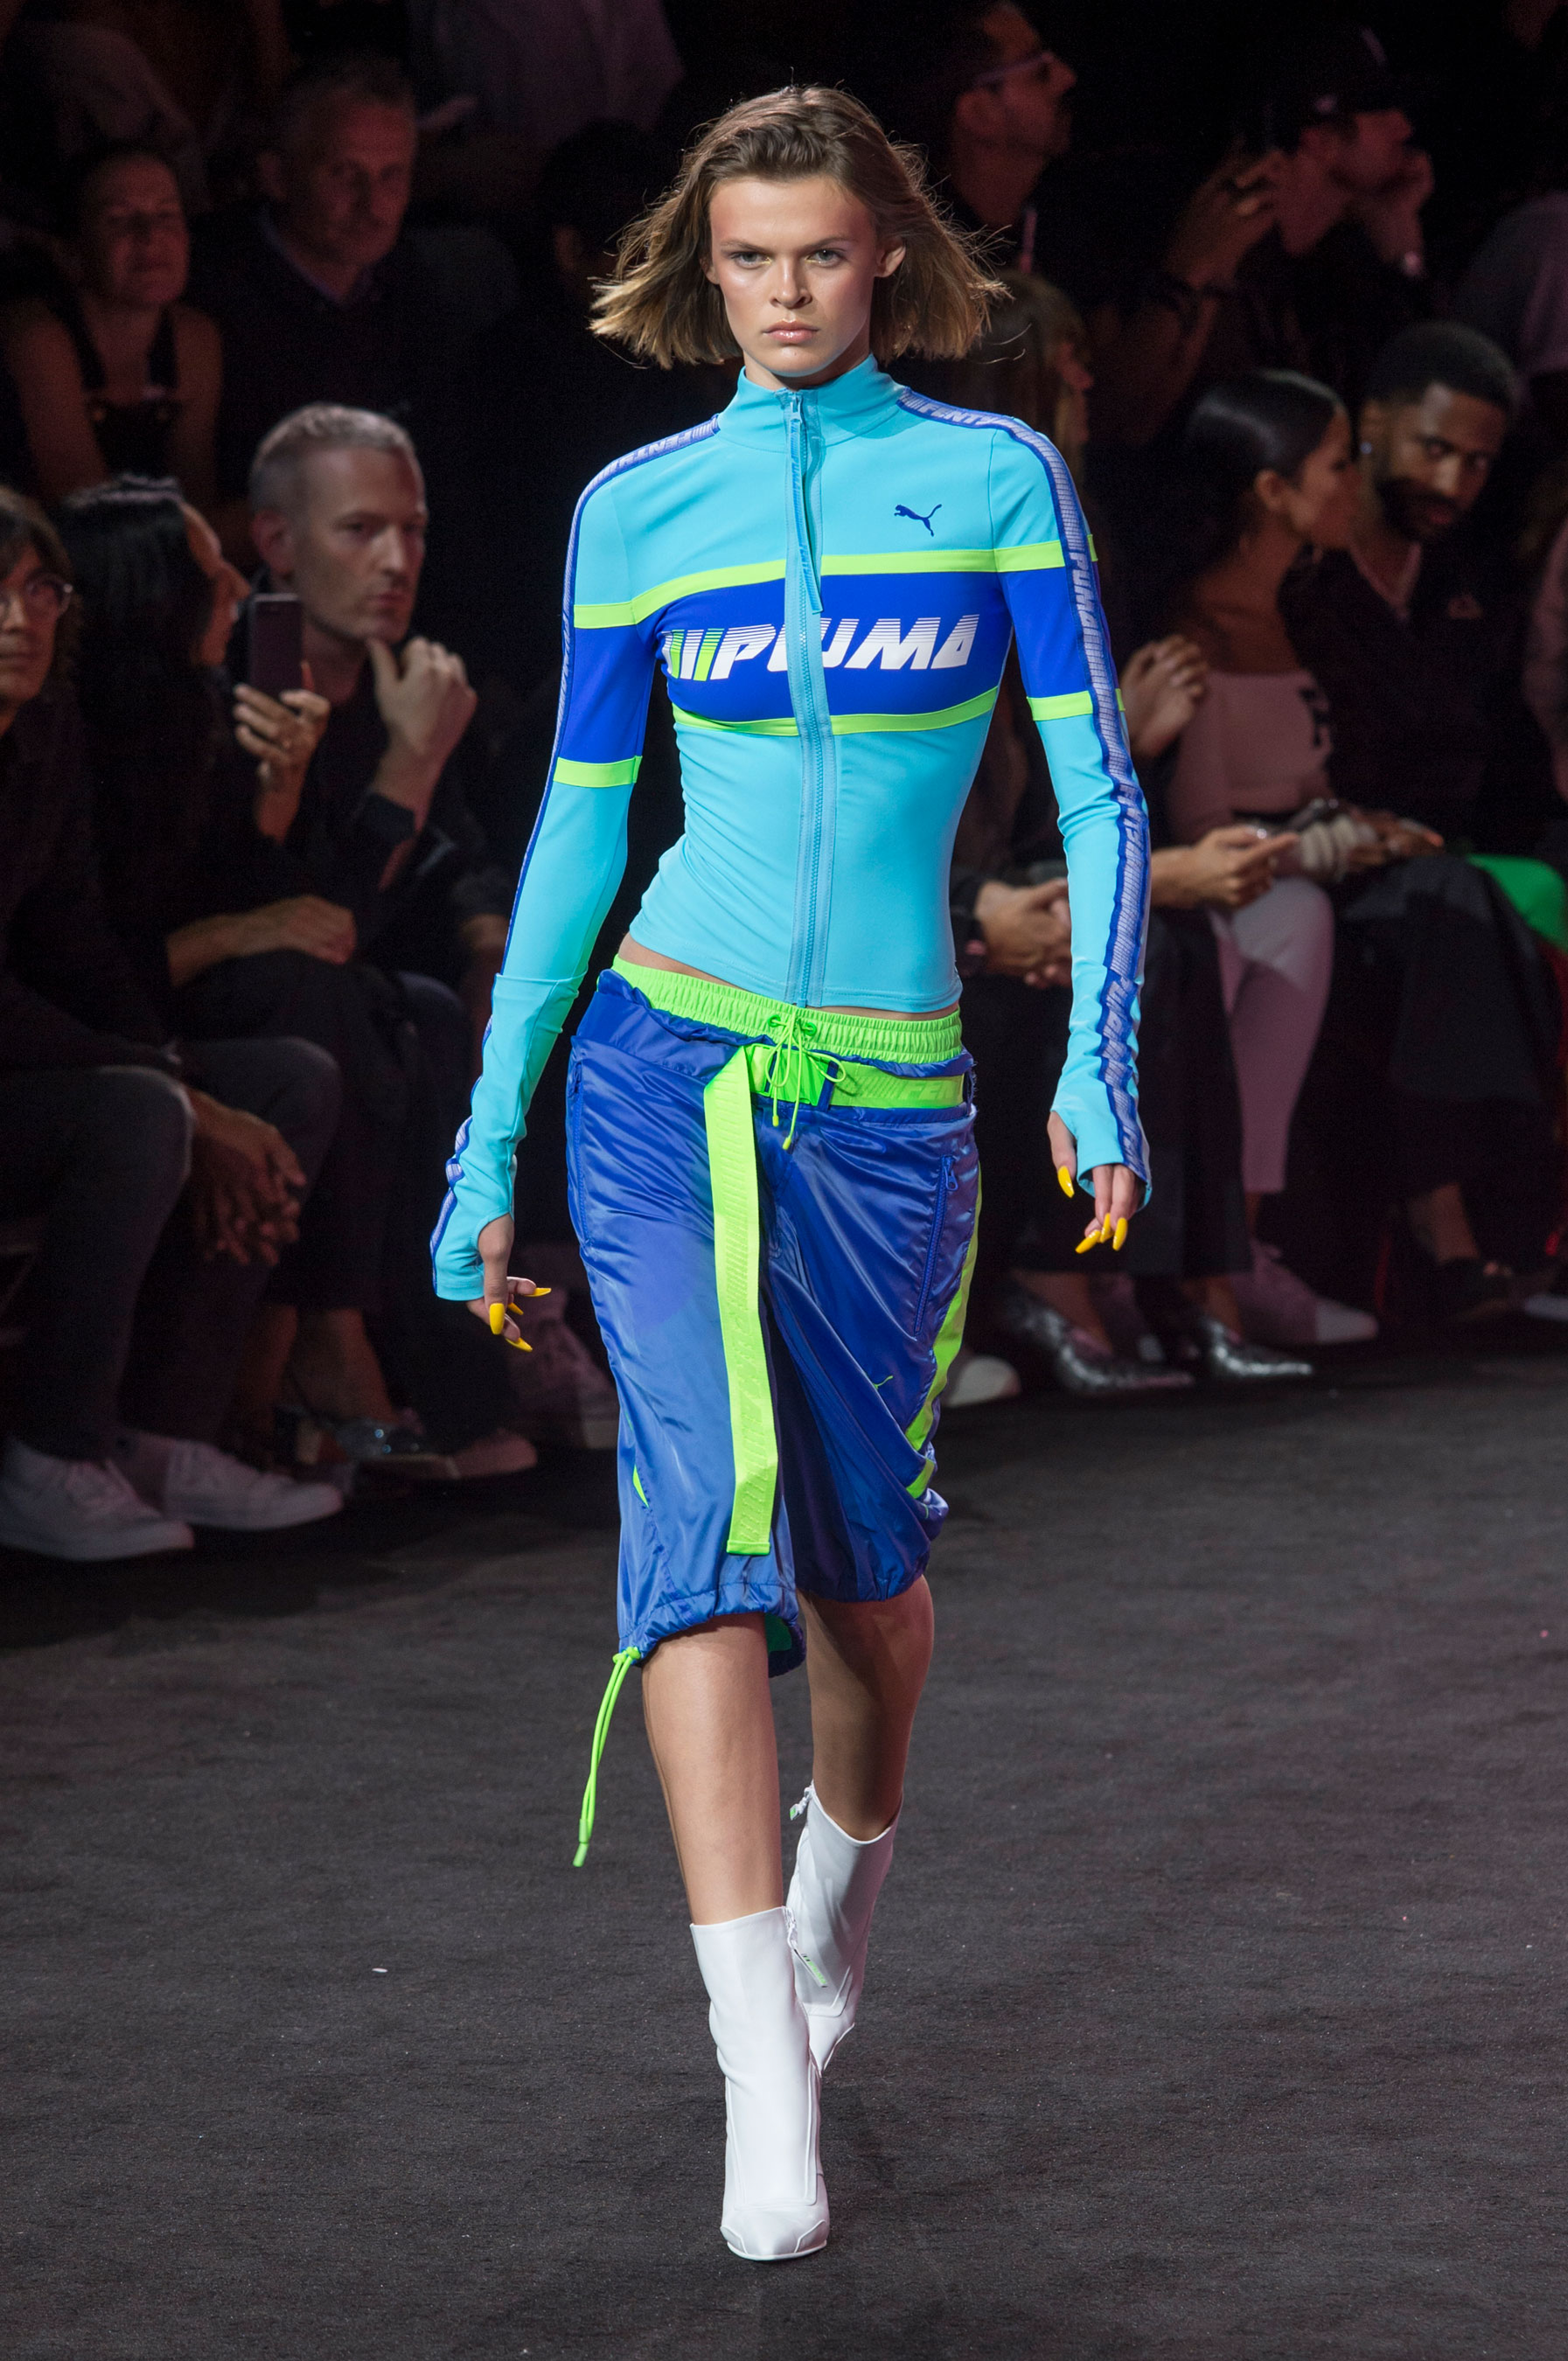 The Top 10 Models Who Walked the Most Shows of Spring 2018